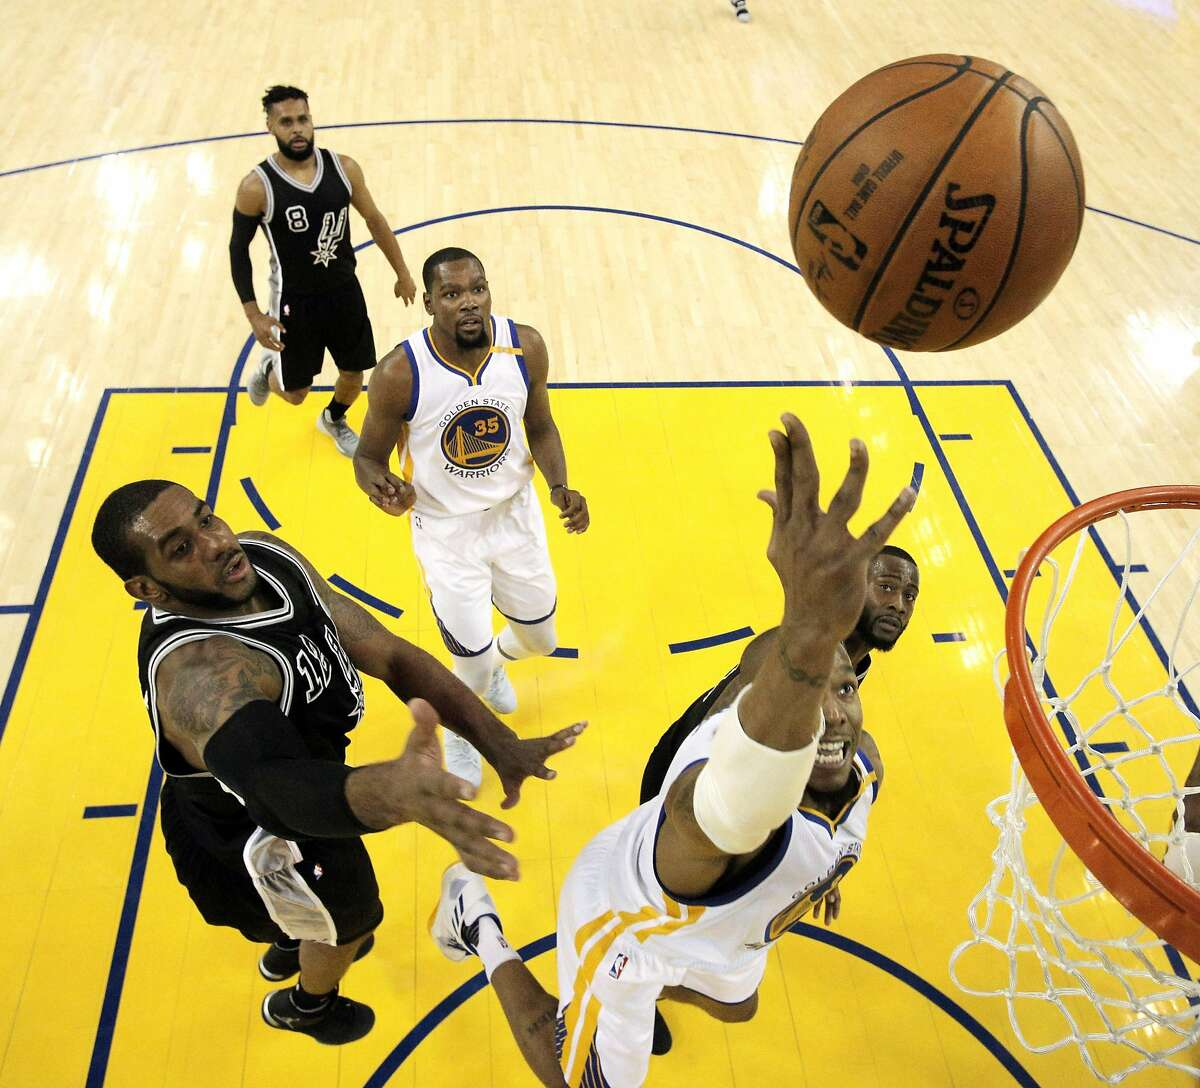 David West (3) puts in a layup in the first half as the Golden State Warriors played the San Antonio Spurs at Oracle Arena in Oakland, Calif., on Tuesday, May 16, 2017, in game 2 of the Western Conference Finals.